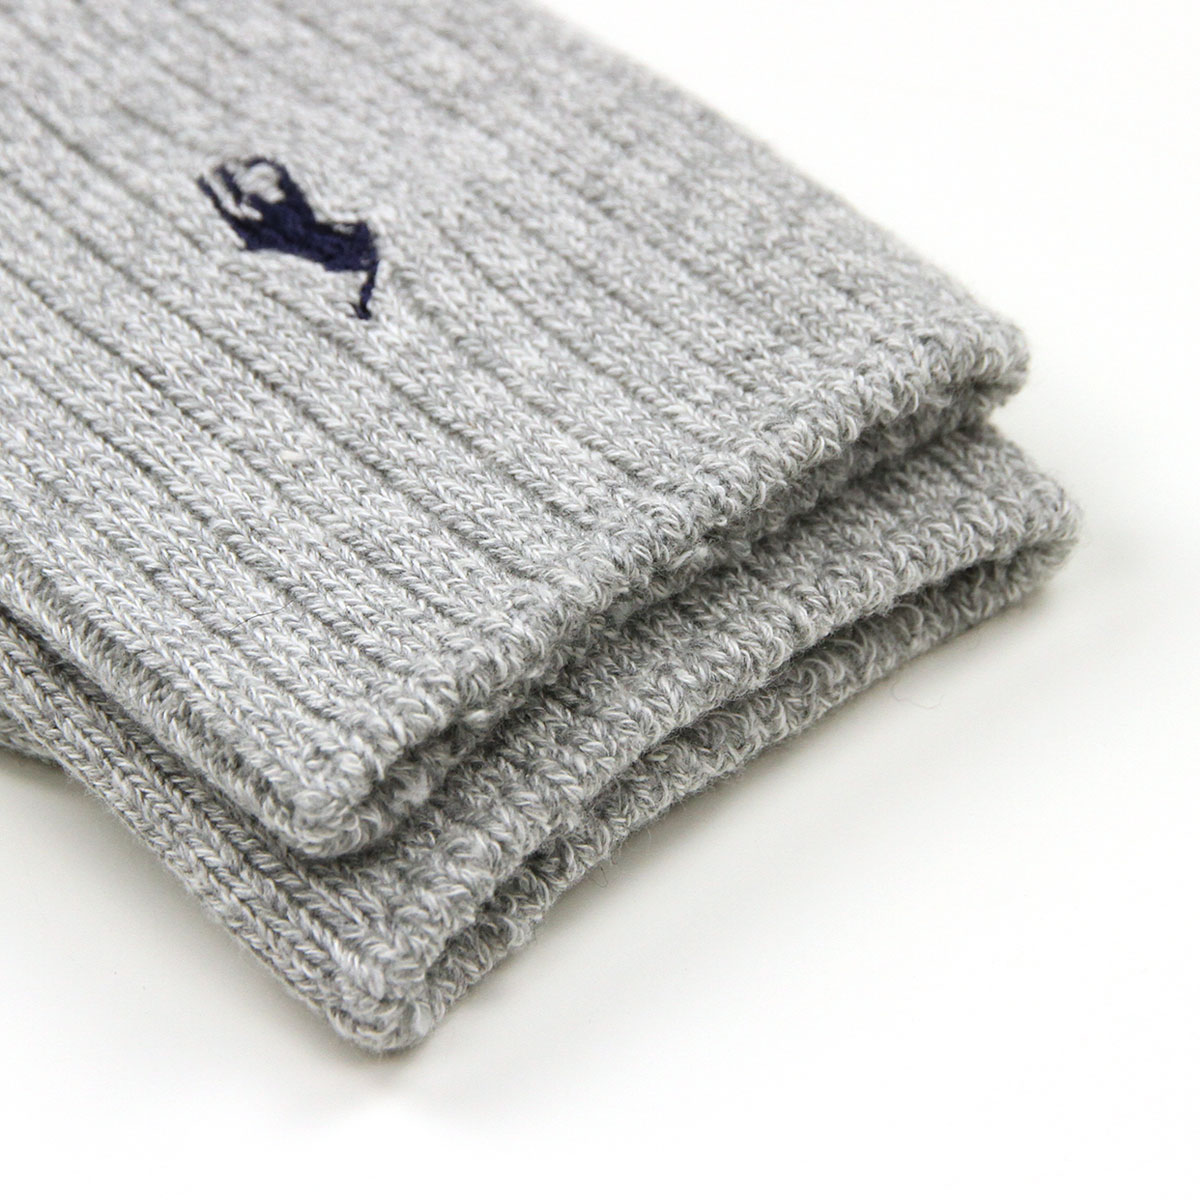 ポロ ラルフローレン POLO RALPH LAUREN 正規品 ソックス COTTON RIB SINGLE SOCK GREY.H 051 - GREY HEATHER A05B B1C C3D D1E E02F